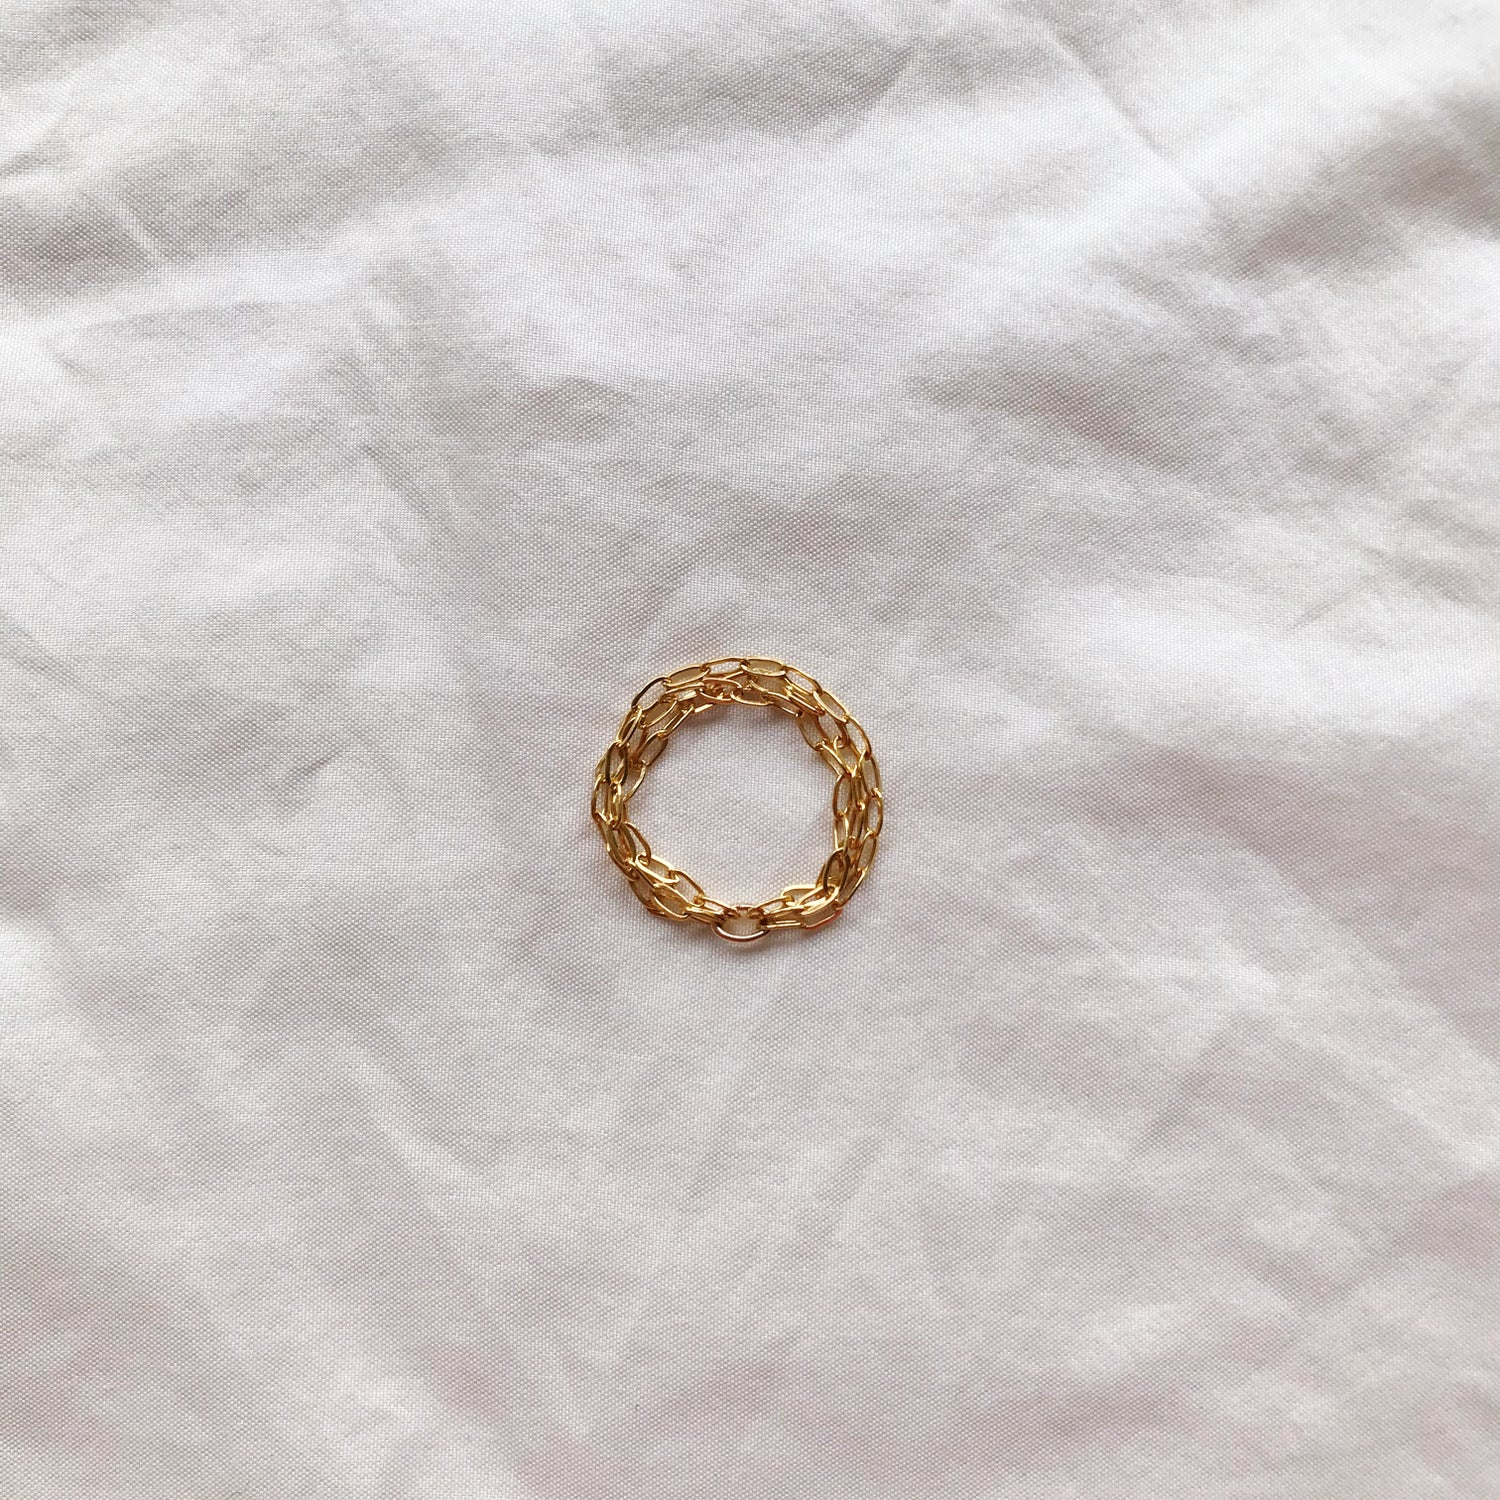 Image of BAGUE CHAINE OR TRINITÉ